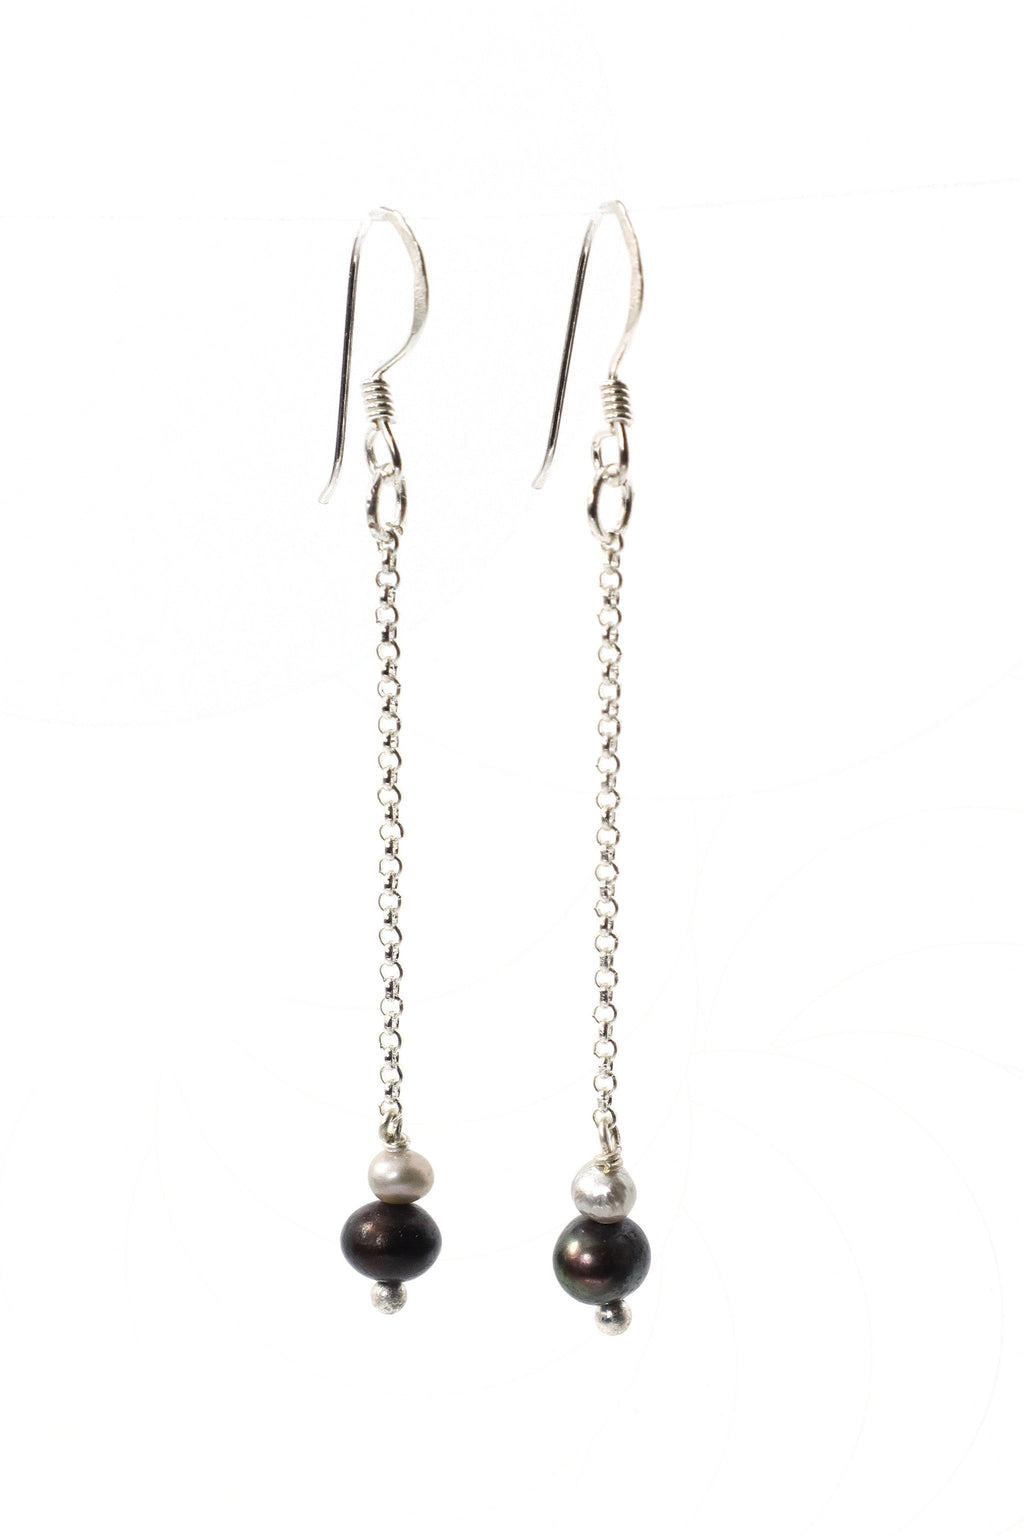 This is a drop style pearl earring on a silver chain. These earrings are handmade with love in Thailand.   This is a Fairtrade Product.